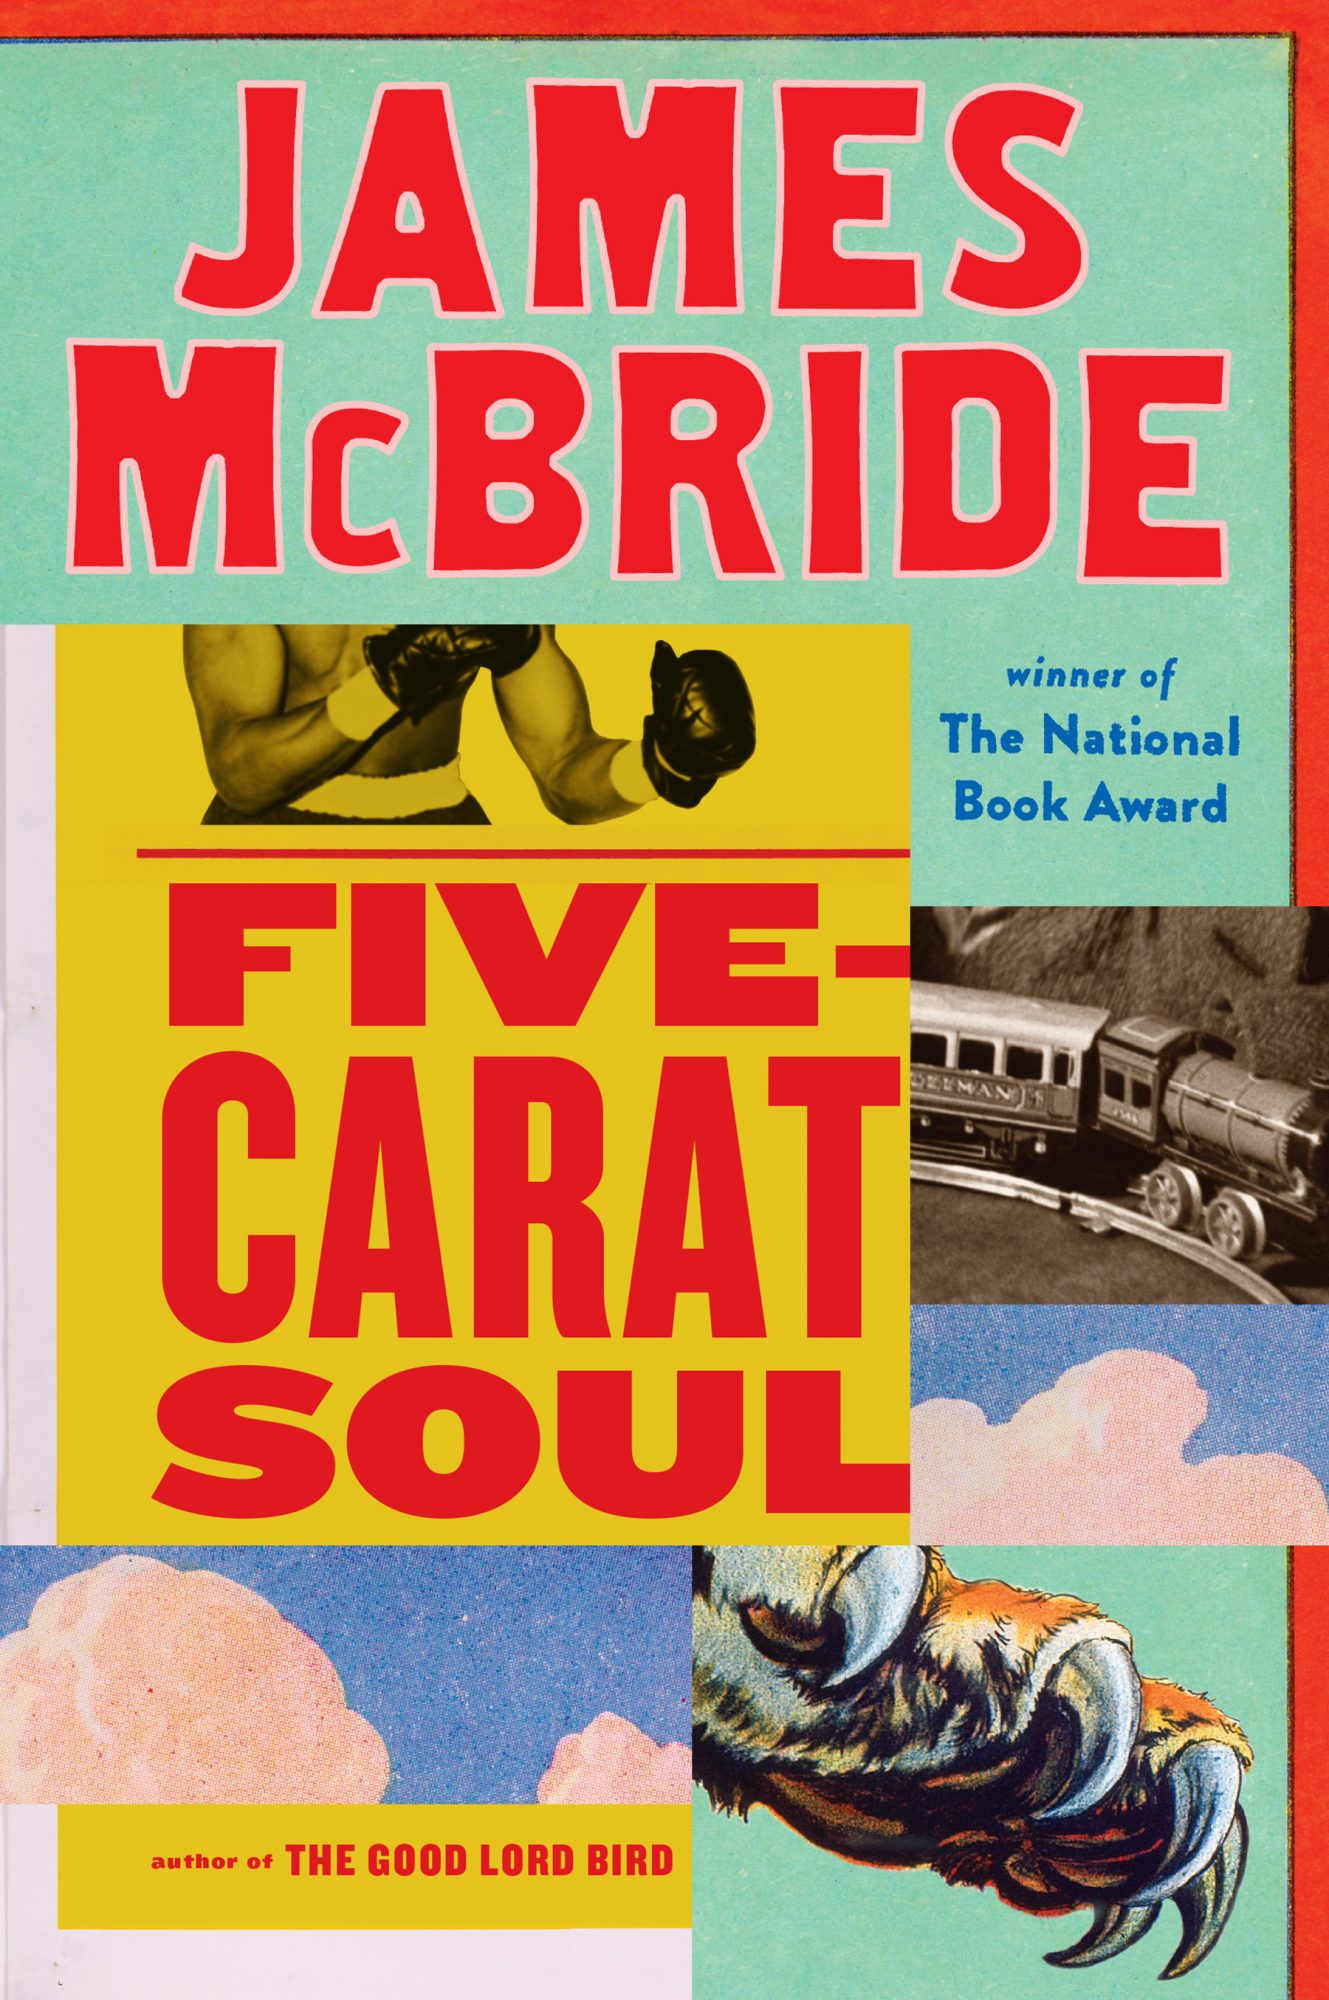 Five-Carat Soulby James McBride